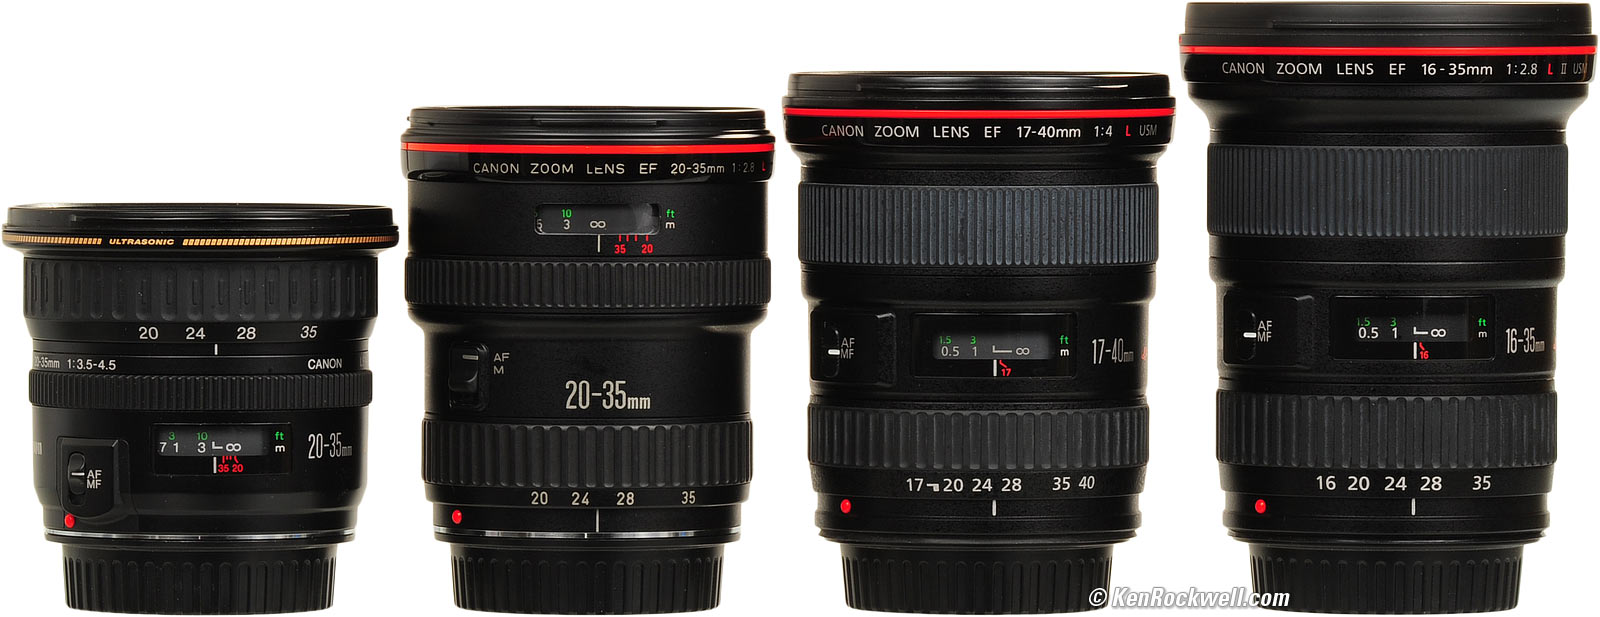 canon 35 1.4 ii review